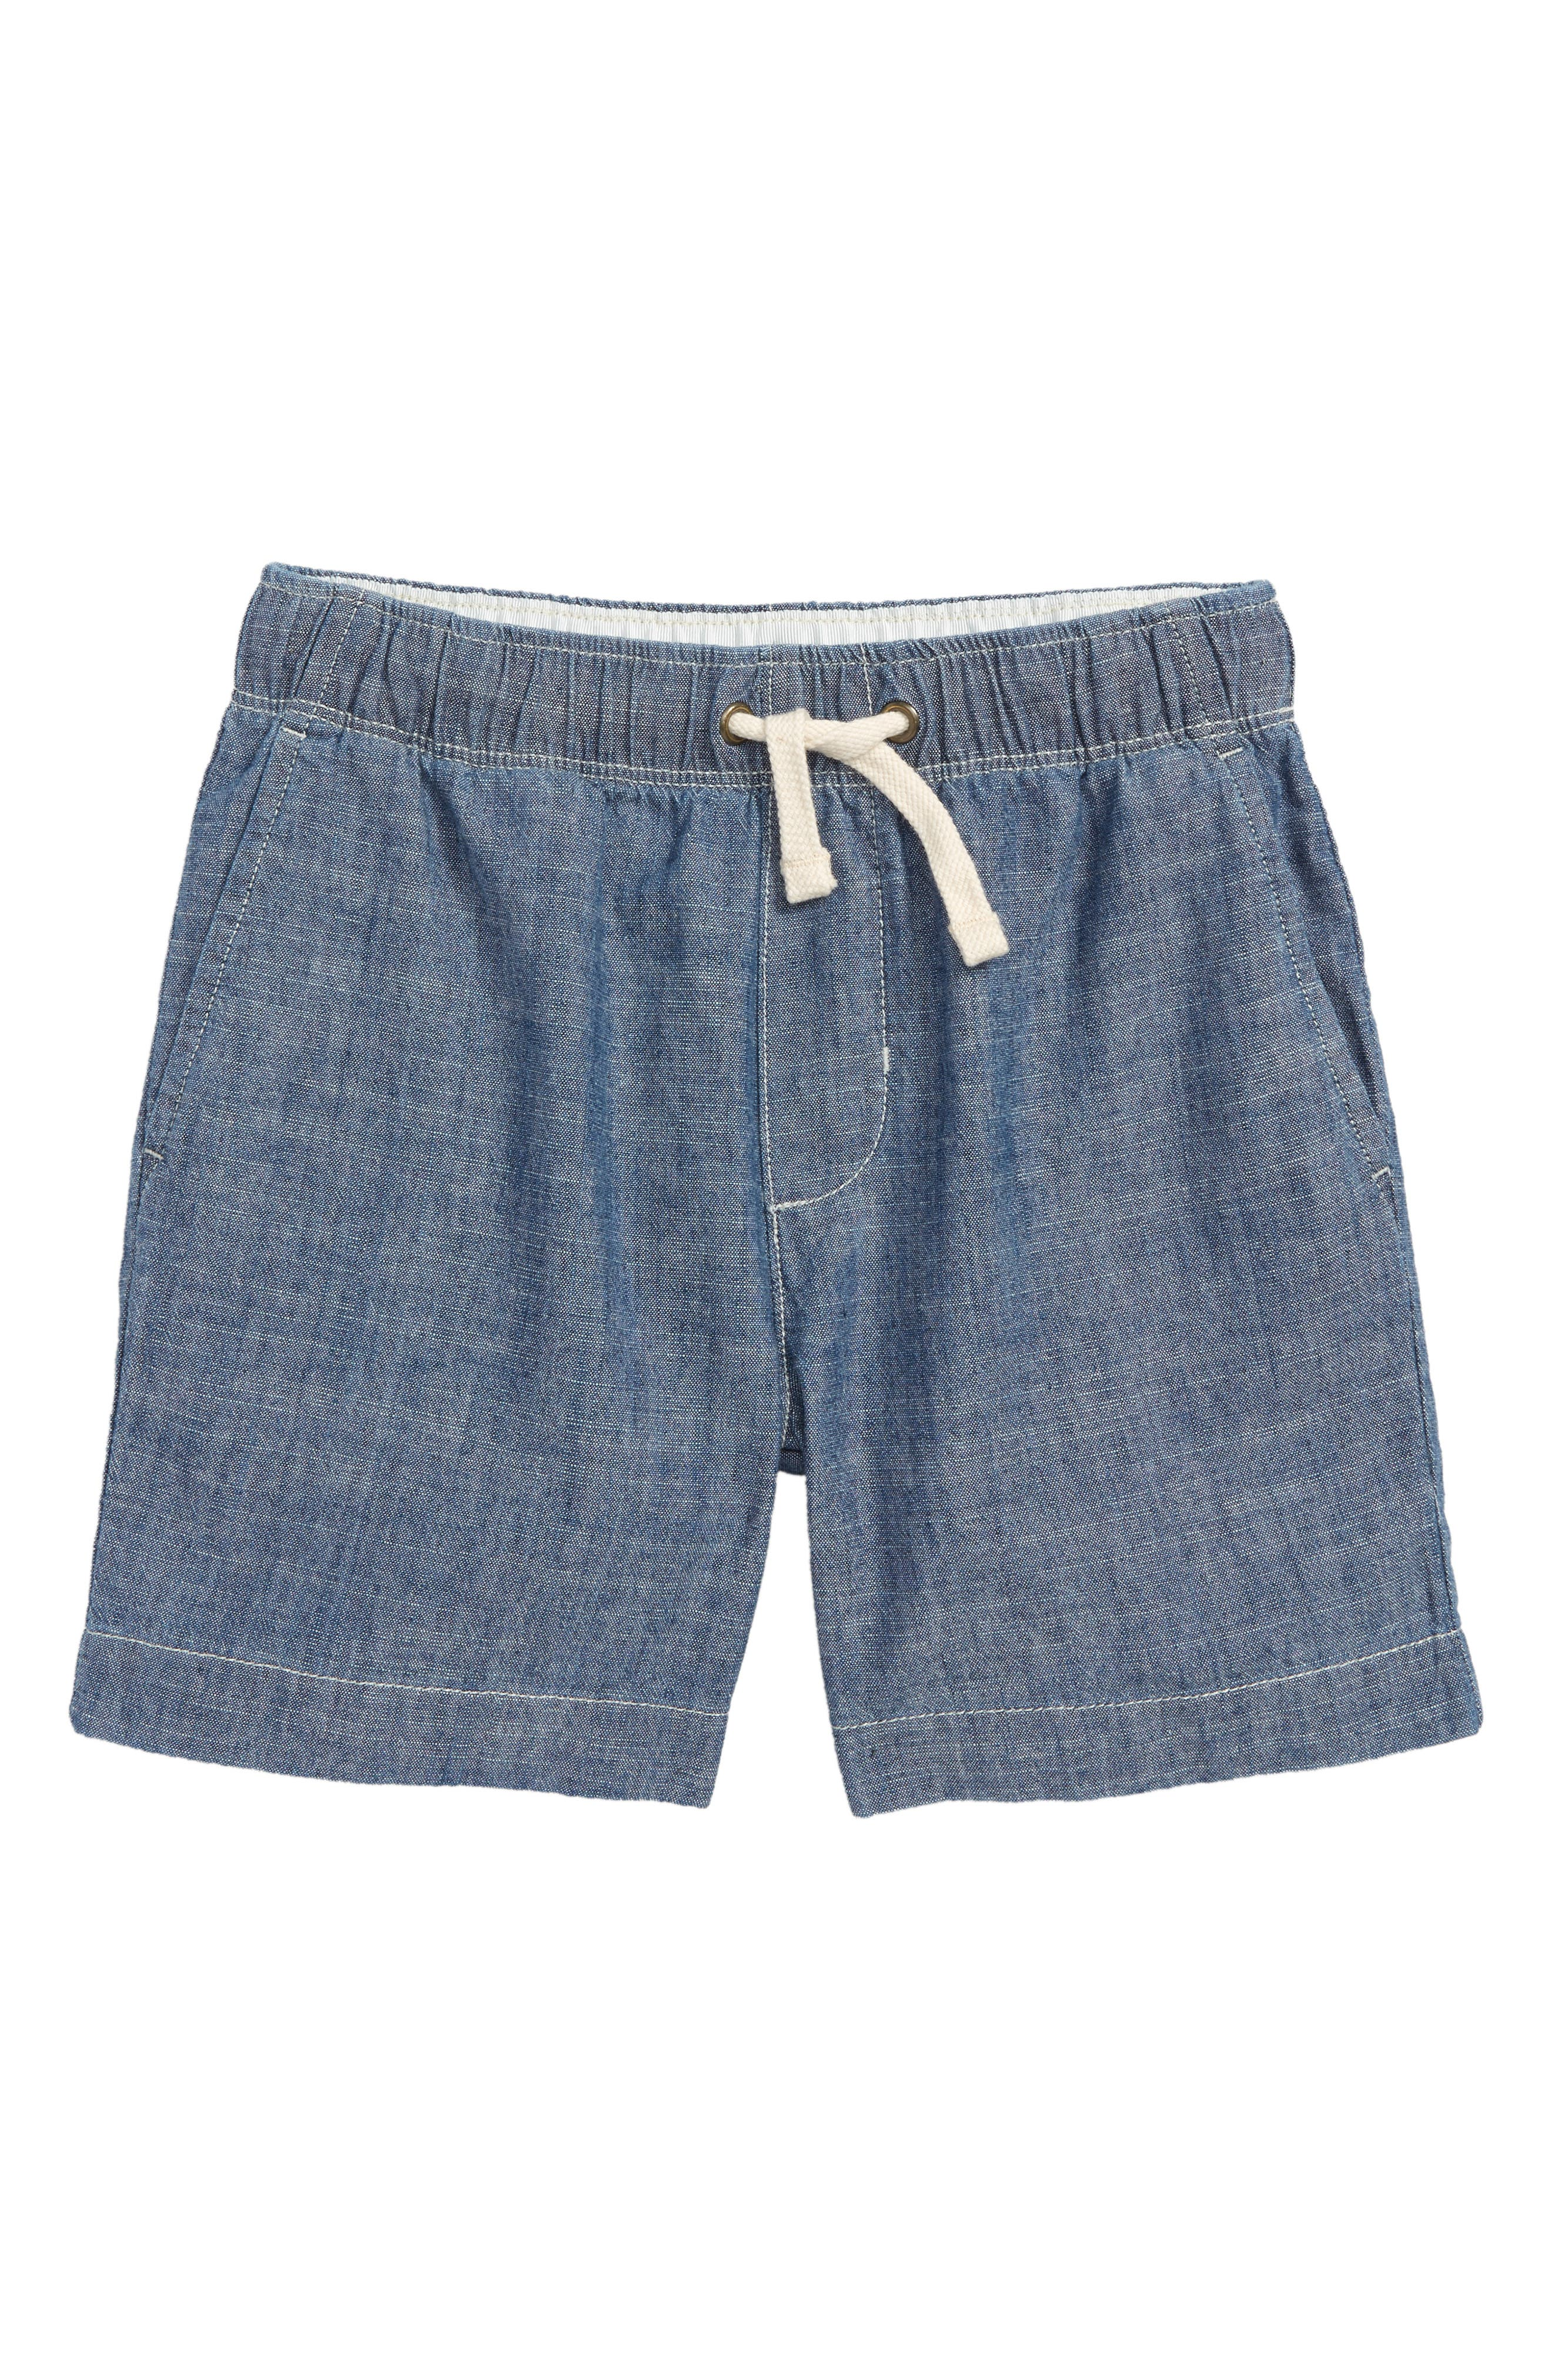 Dock Chambray Shorts,                         Main,                         color, Atlantic Wash